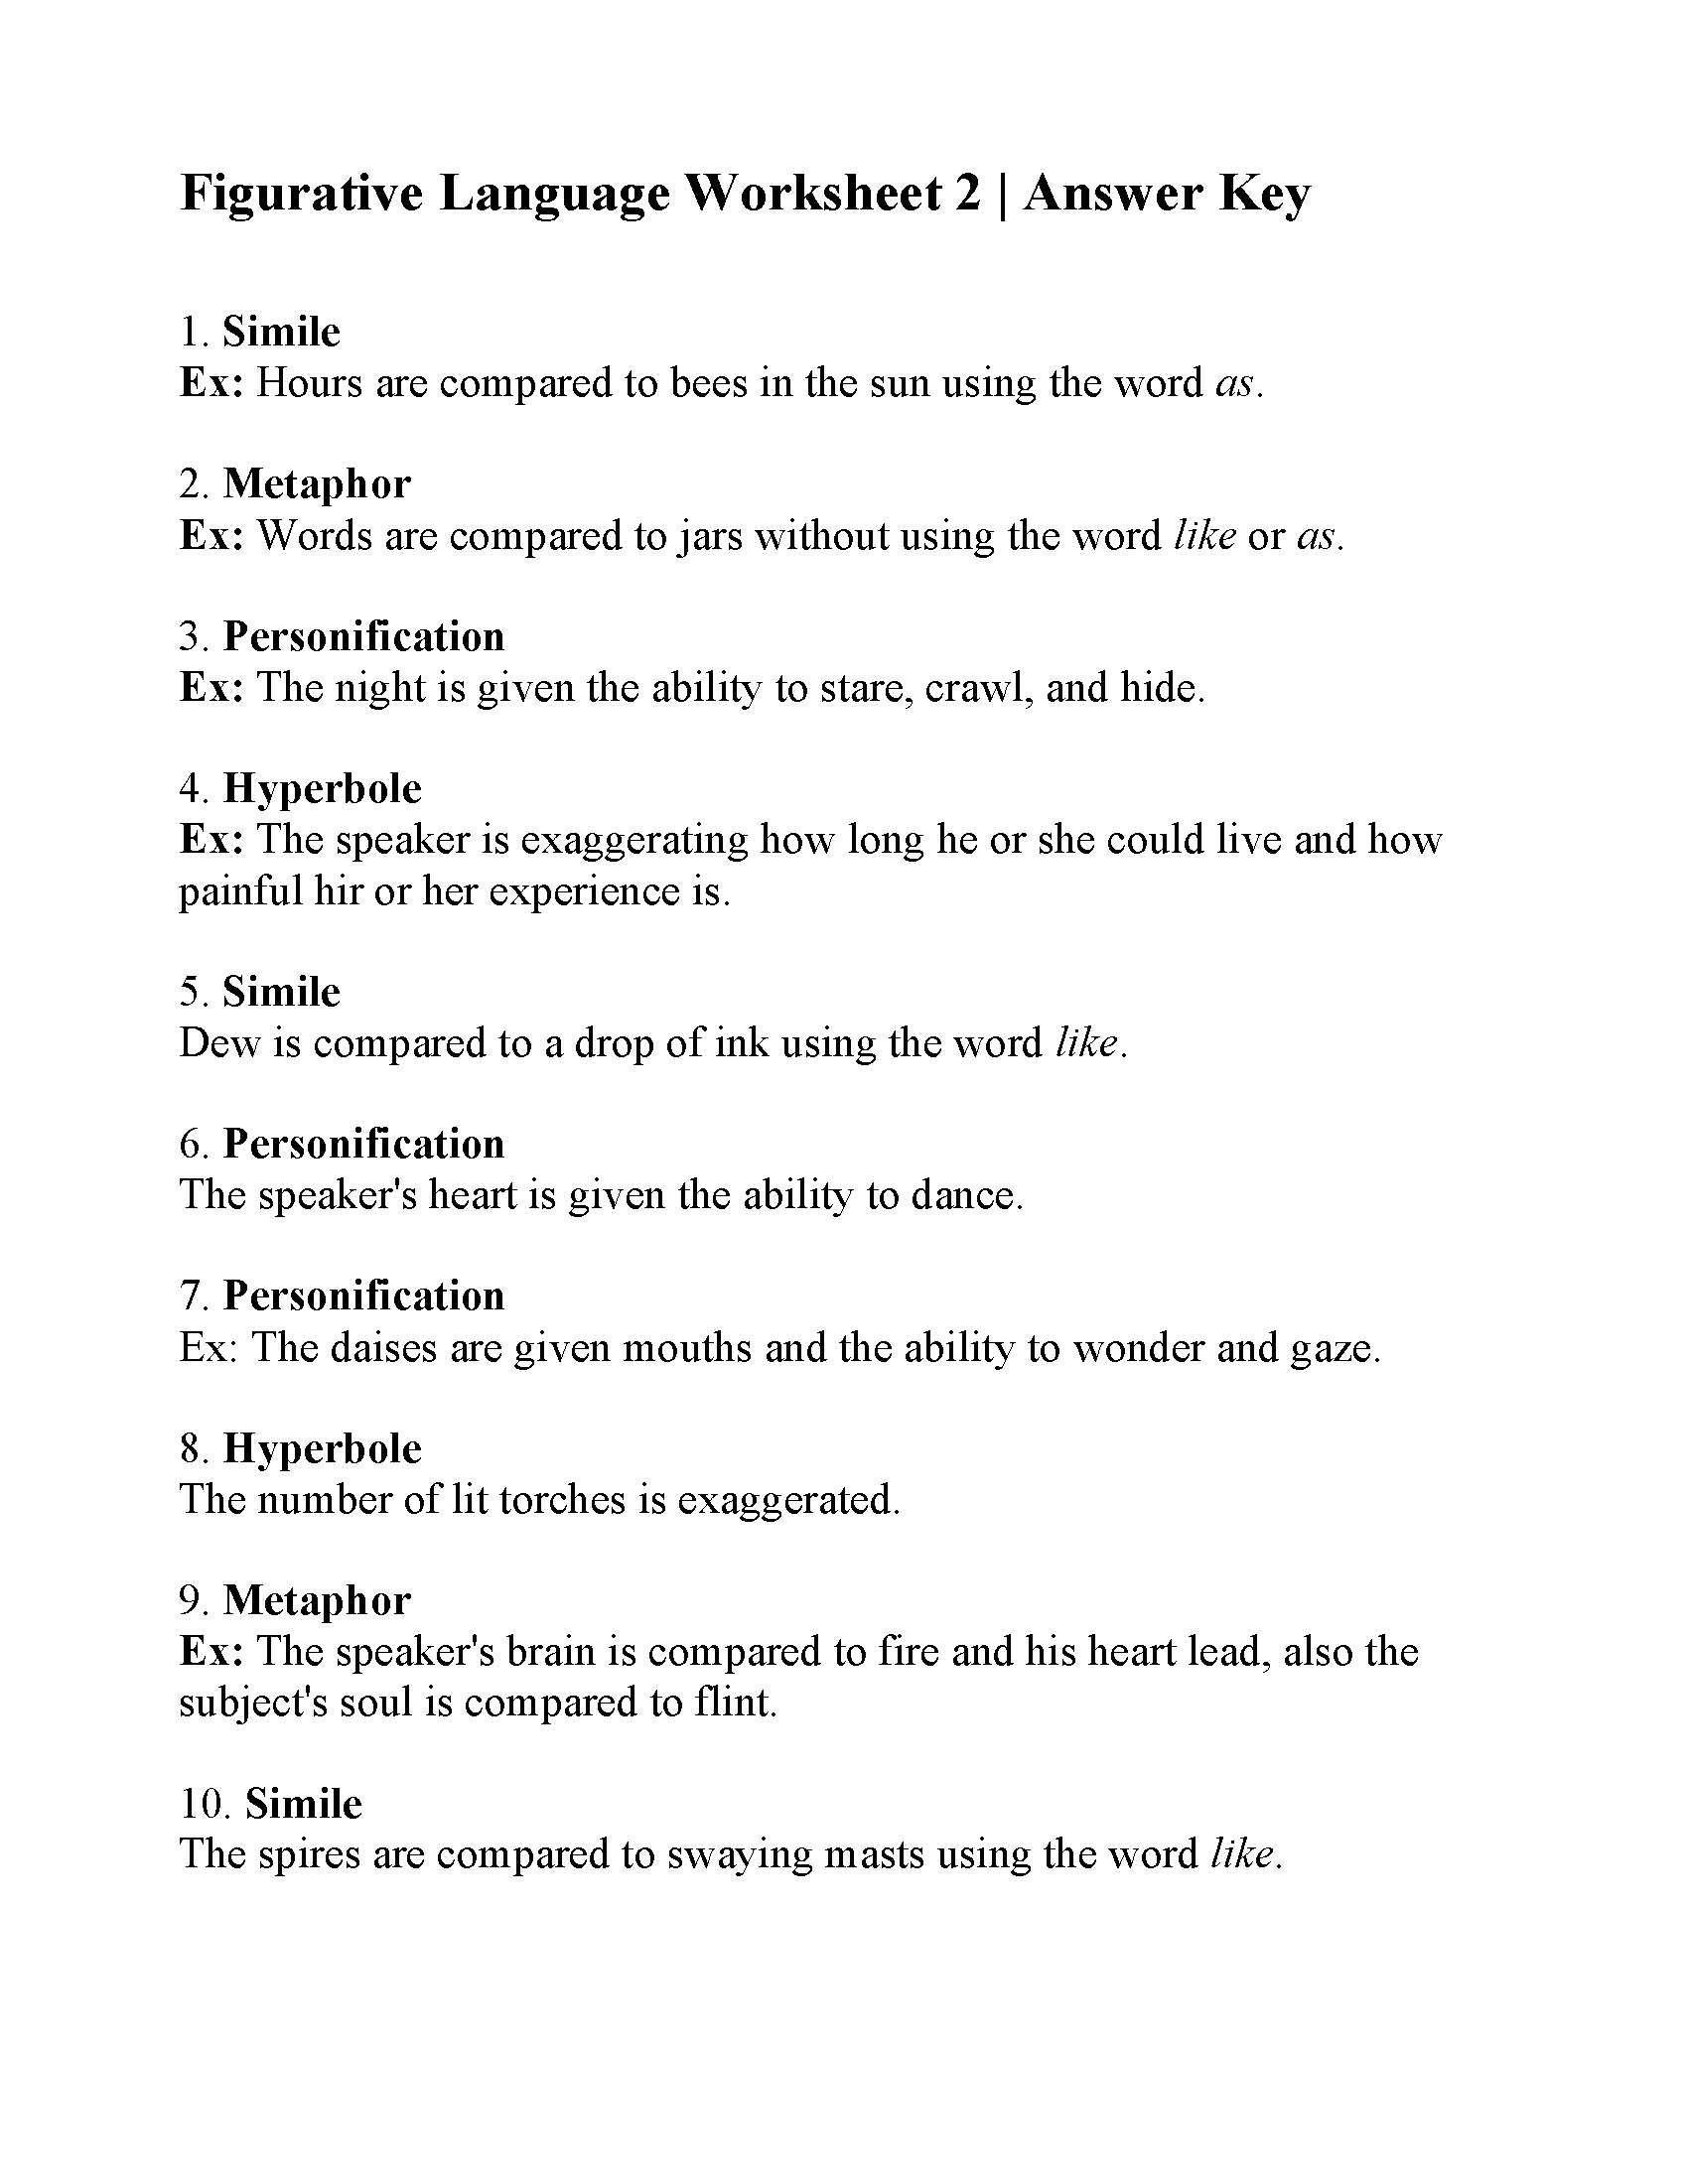 Figurative Language Worksheet 2  Answers Inside Hatchet Figurative Language Worksheet Answers